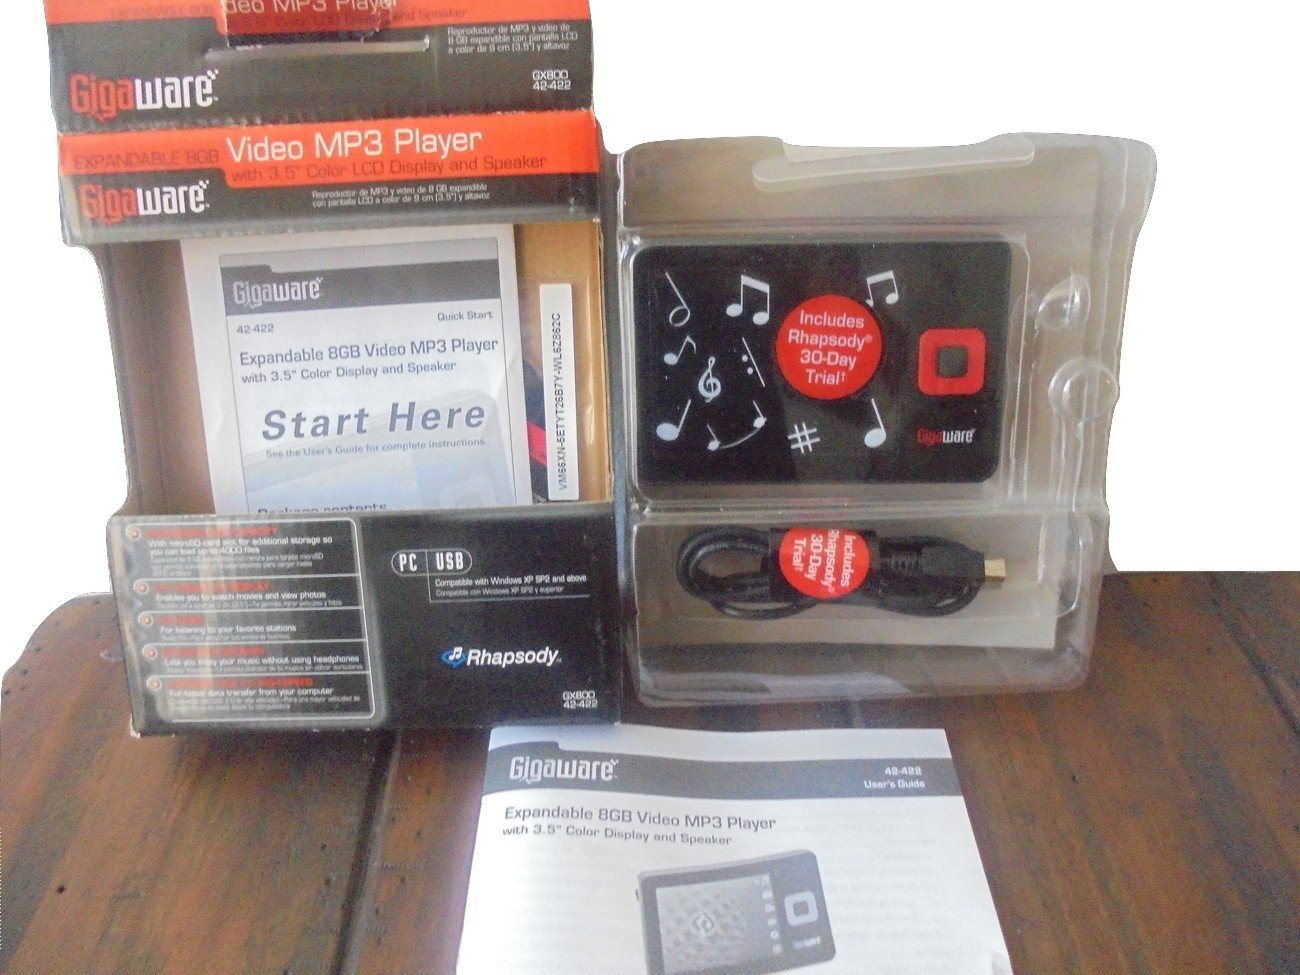 GIGAWARE 4GB VIDEO MP3 PLAYER DRIVERS